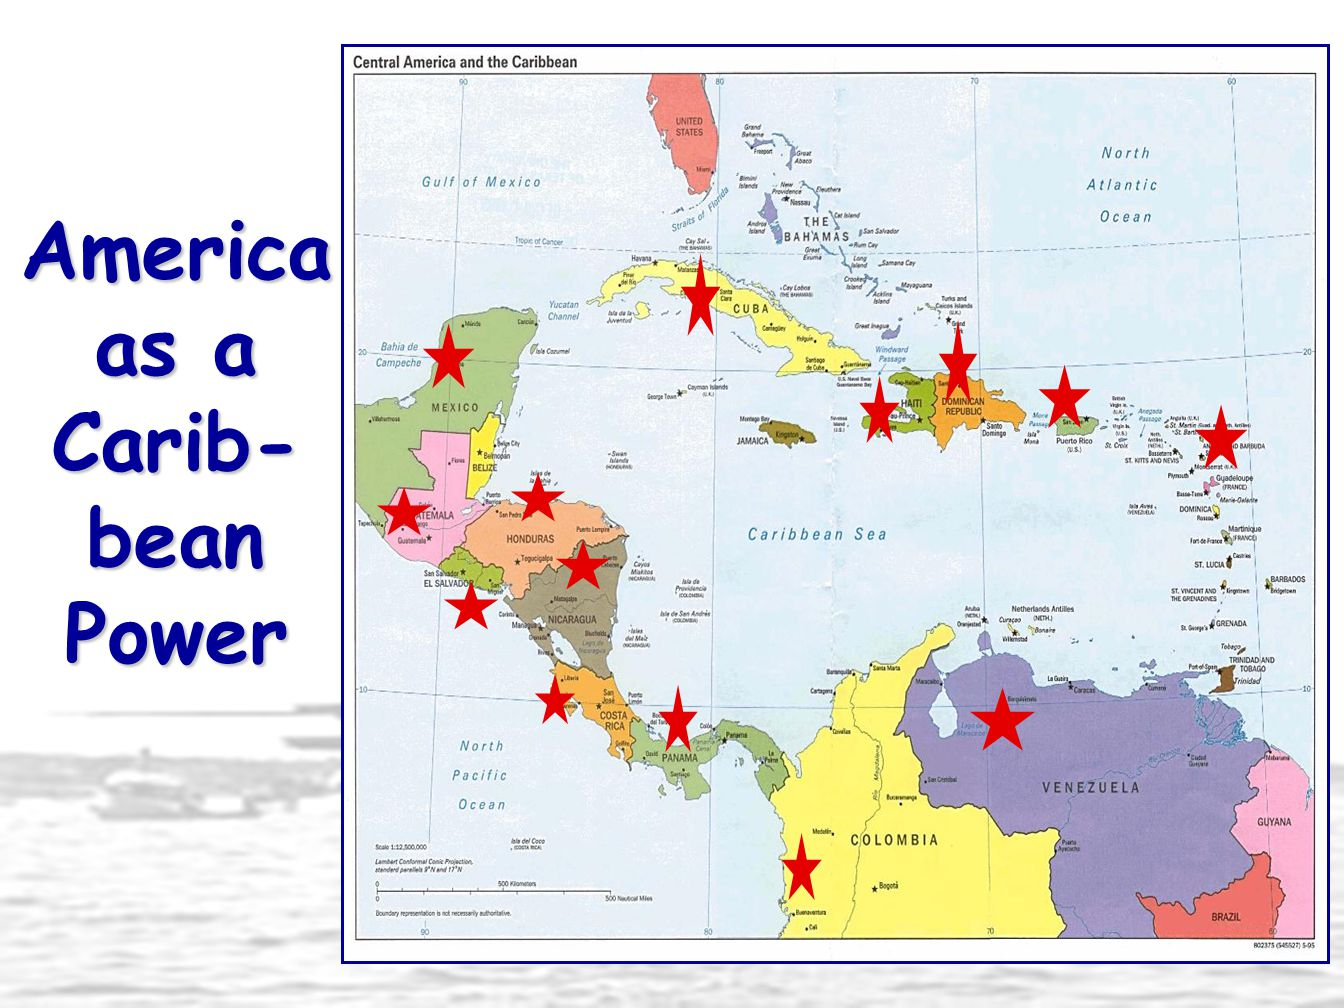 America as a Carib-bean Power